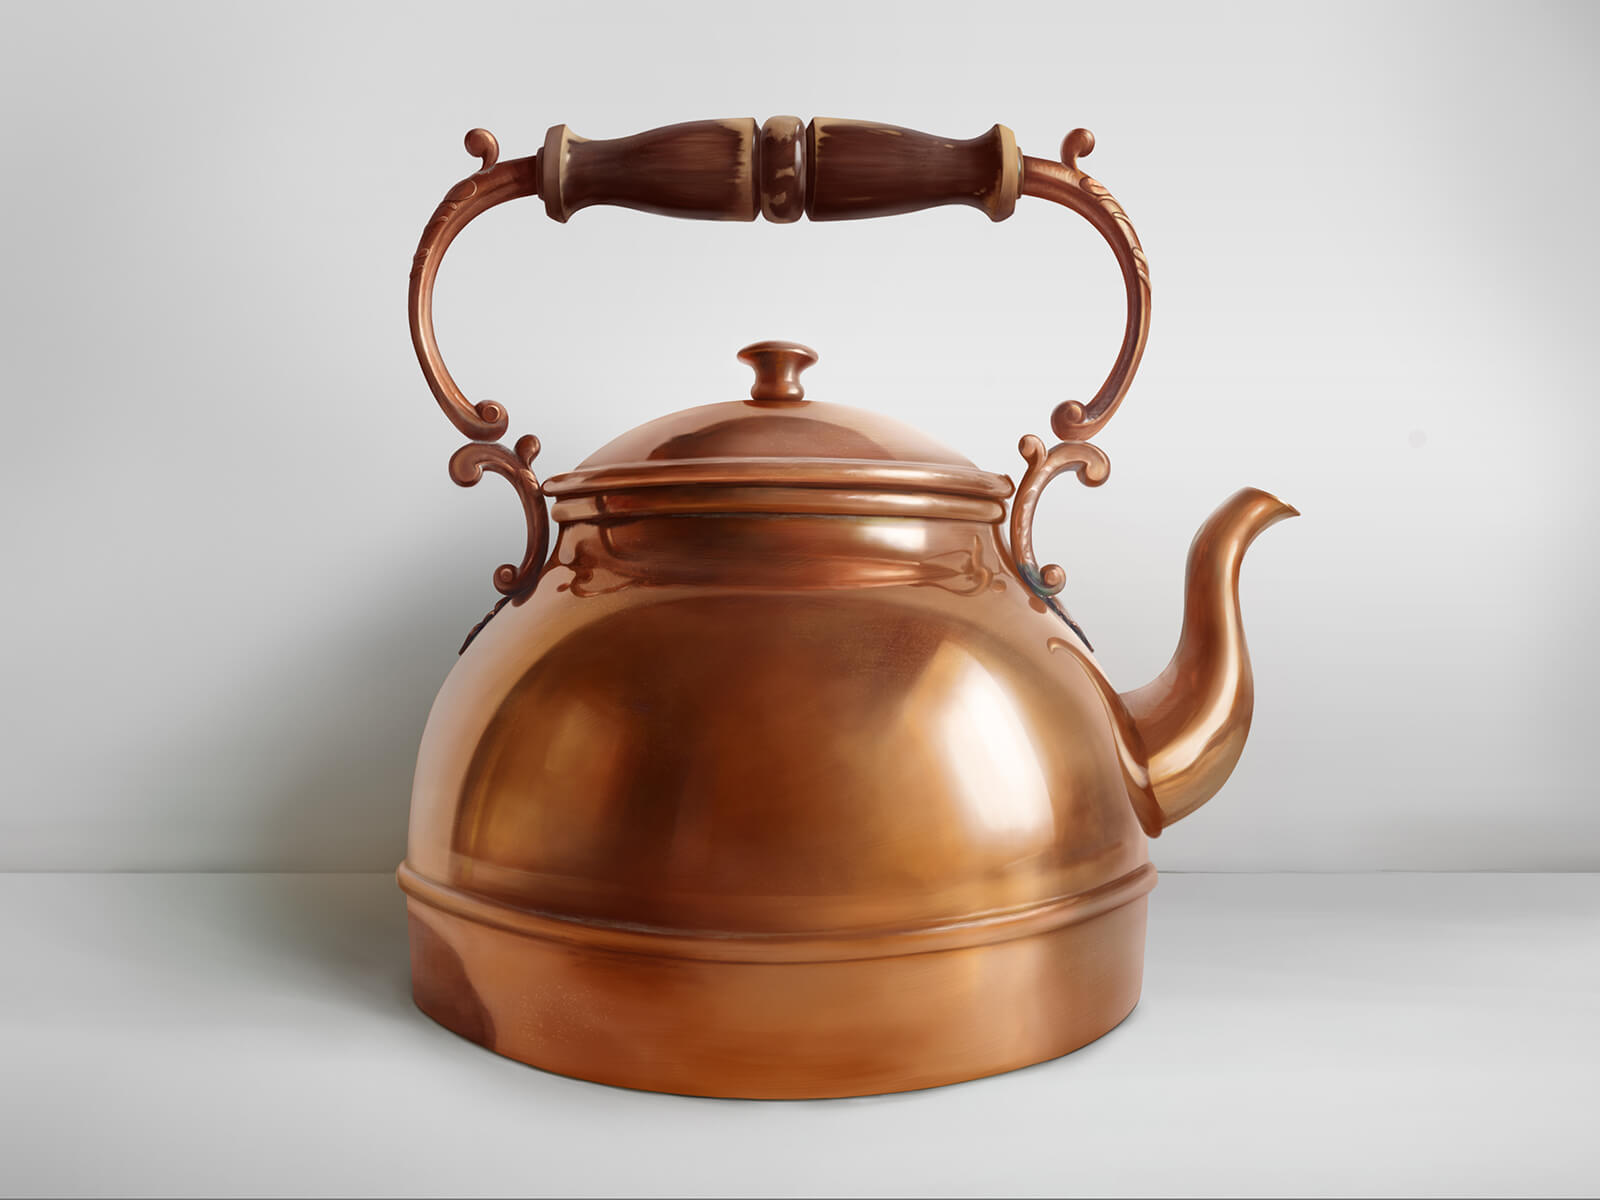 Still life painting of a copper kettle against a white background with an ornate wooden handle above.